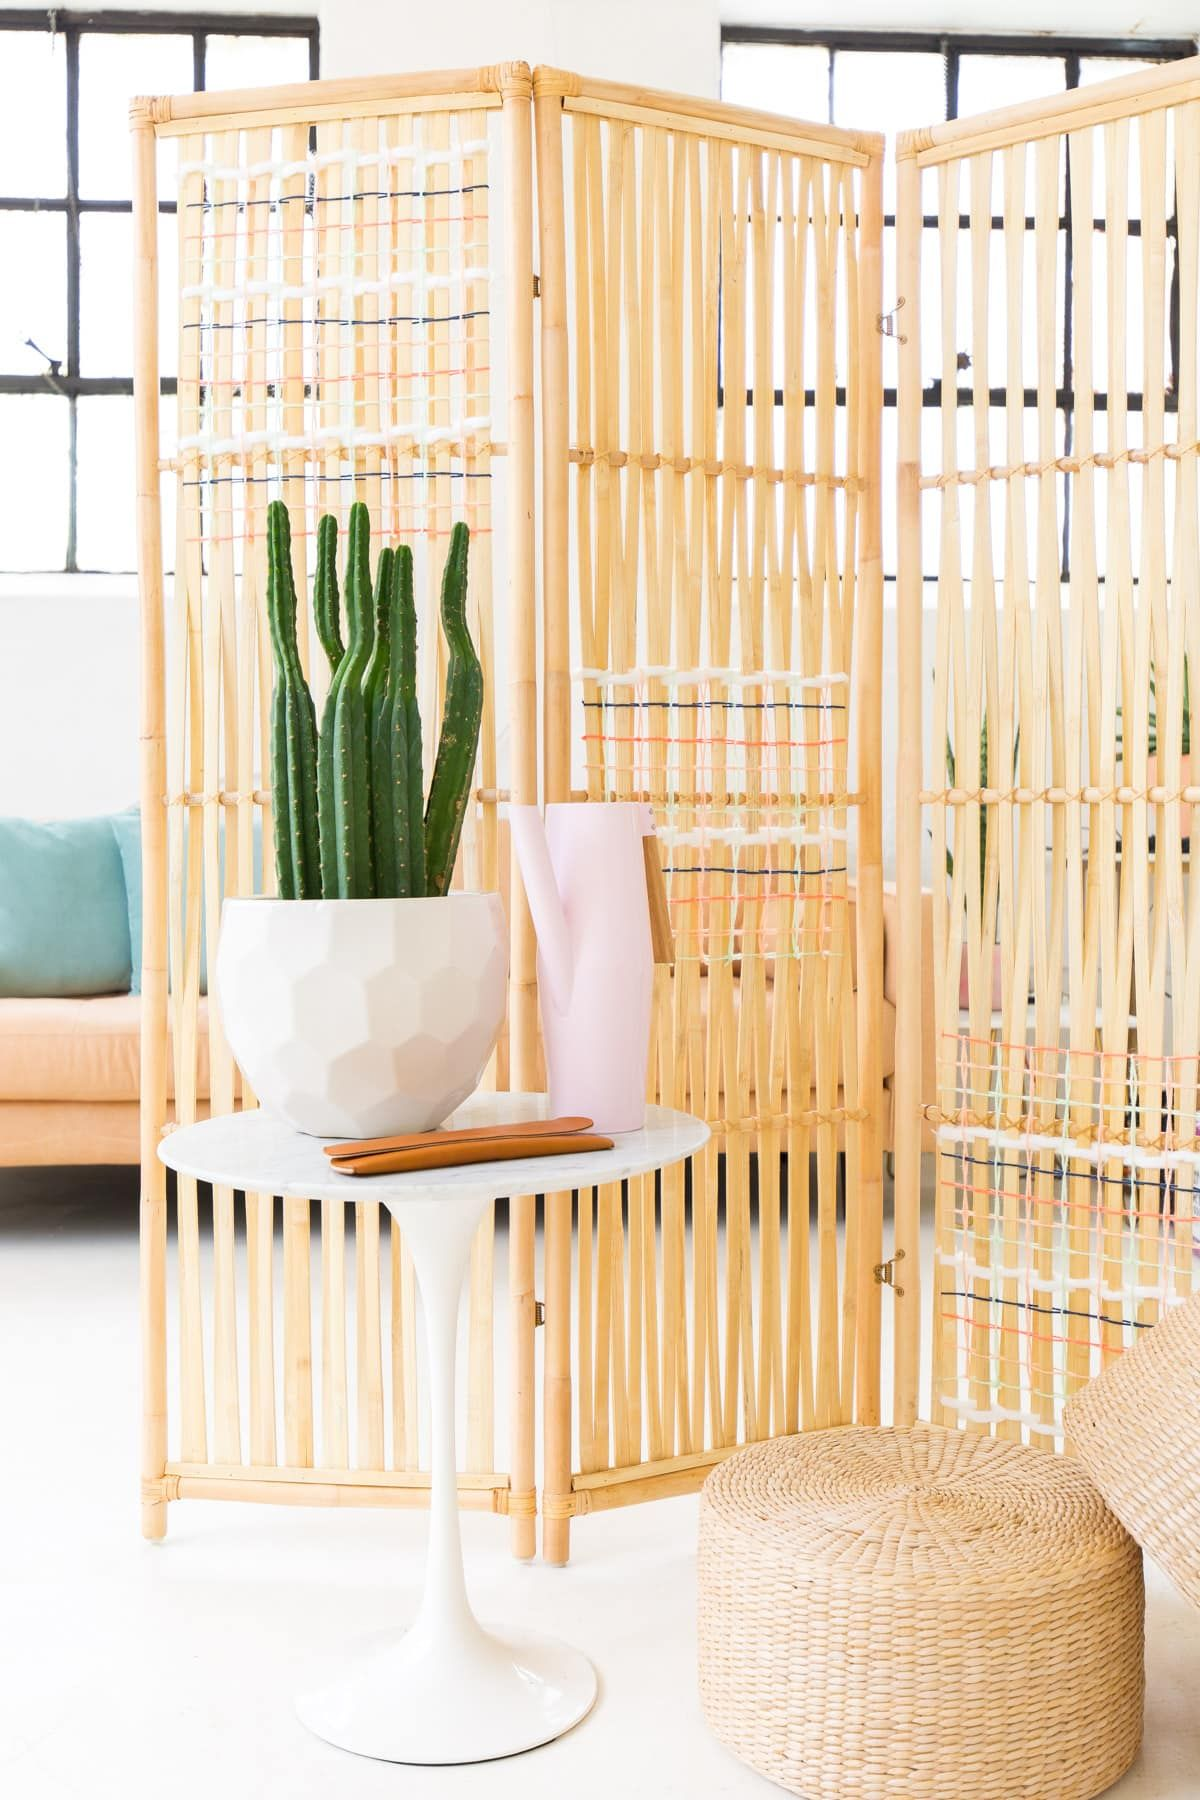 1564566419 782 diy room divider ideas that let you reinvent your home - DIY Room Divider Ideas That Let You Reinvent Your Home